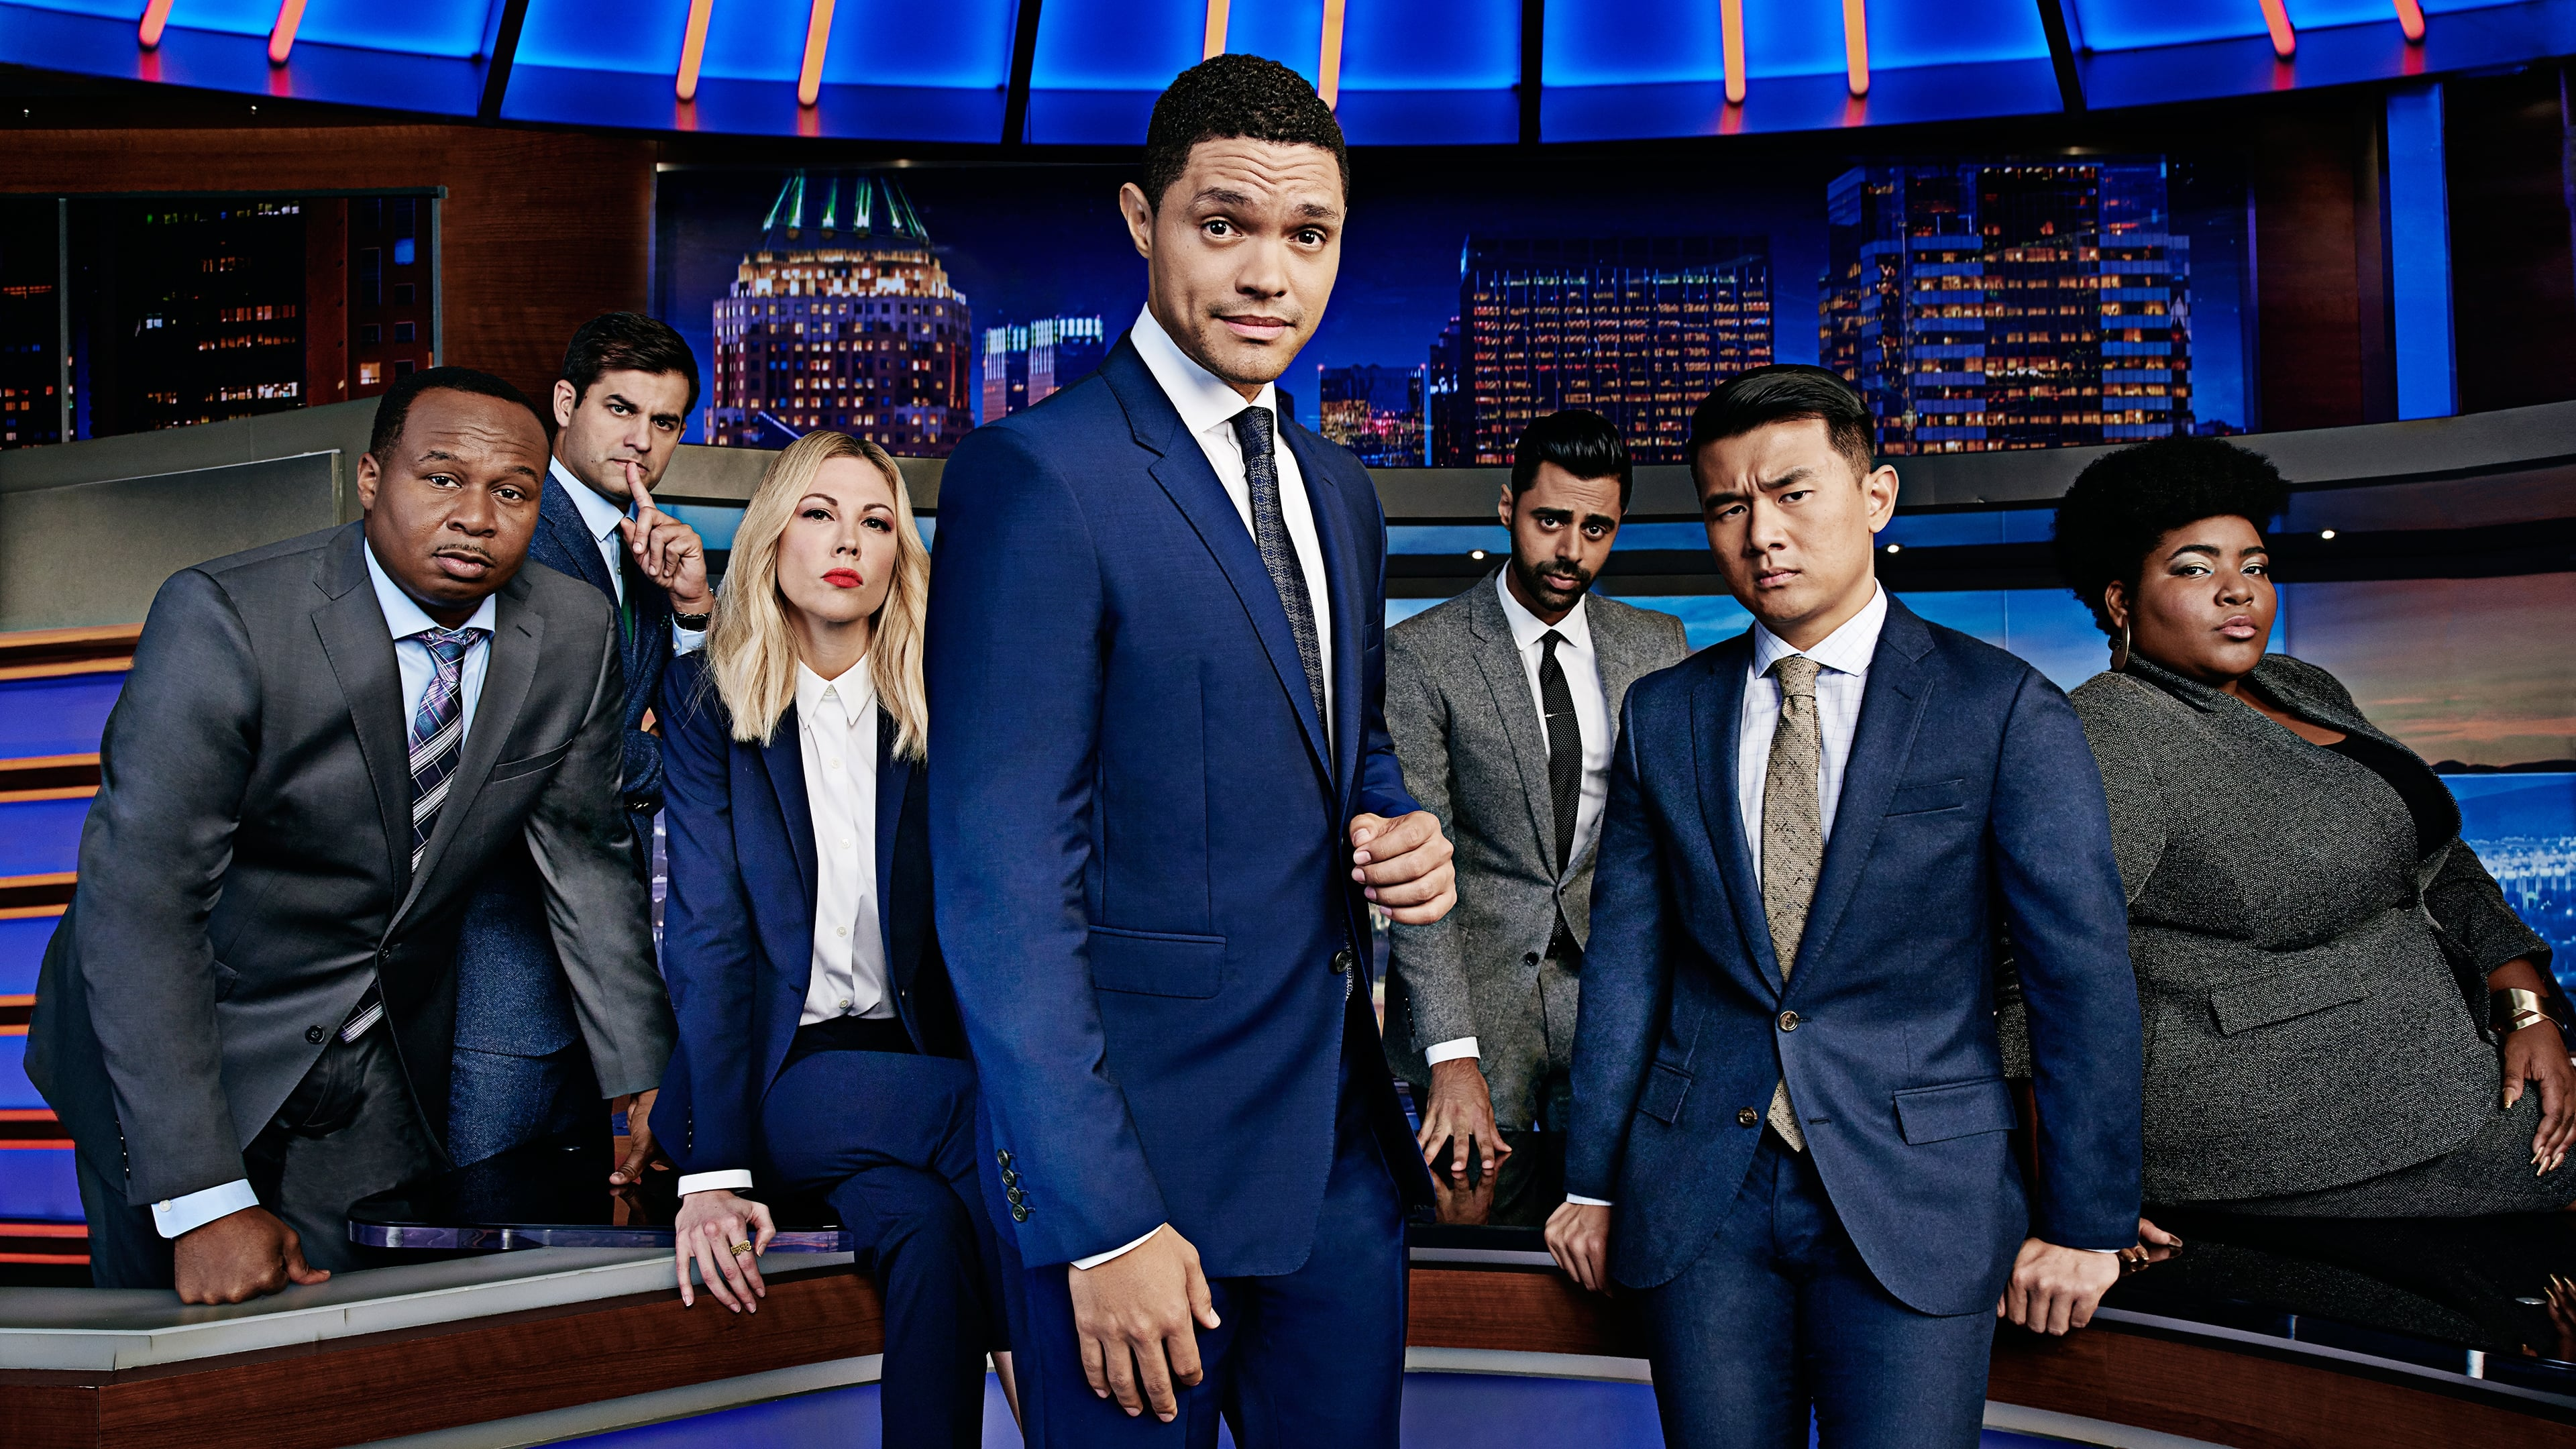 The Daily Show with Trevor Noah - Season 16